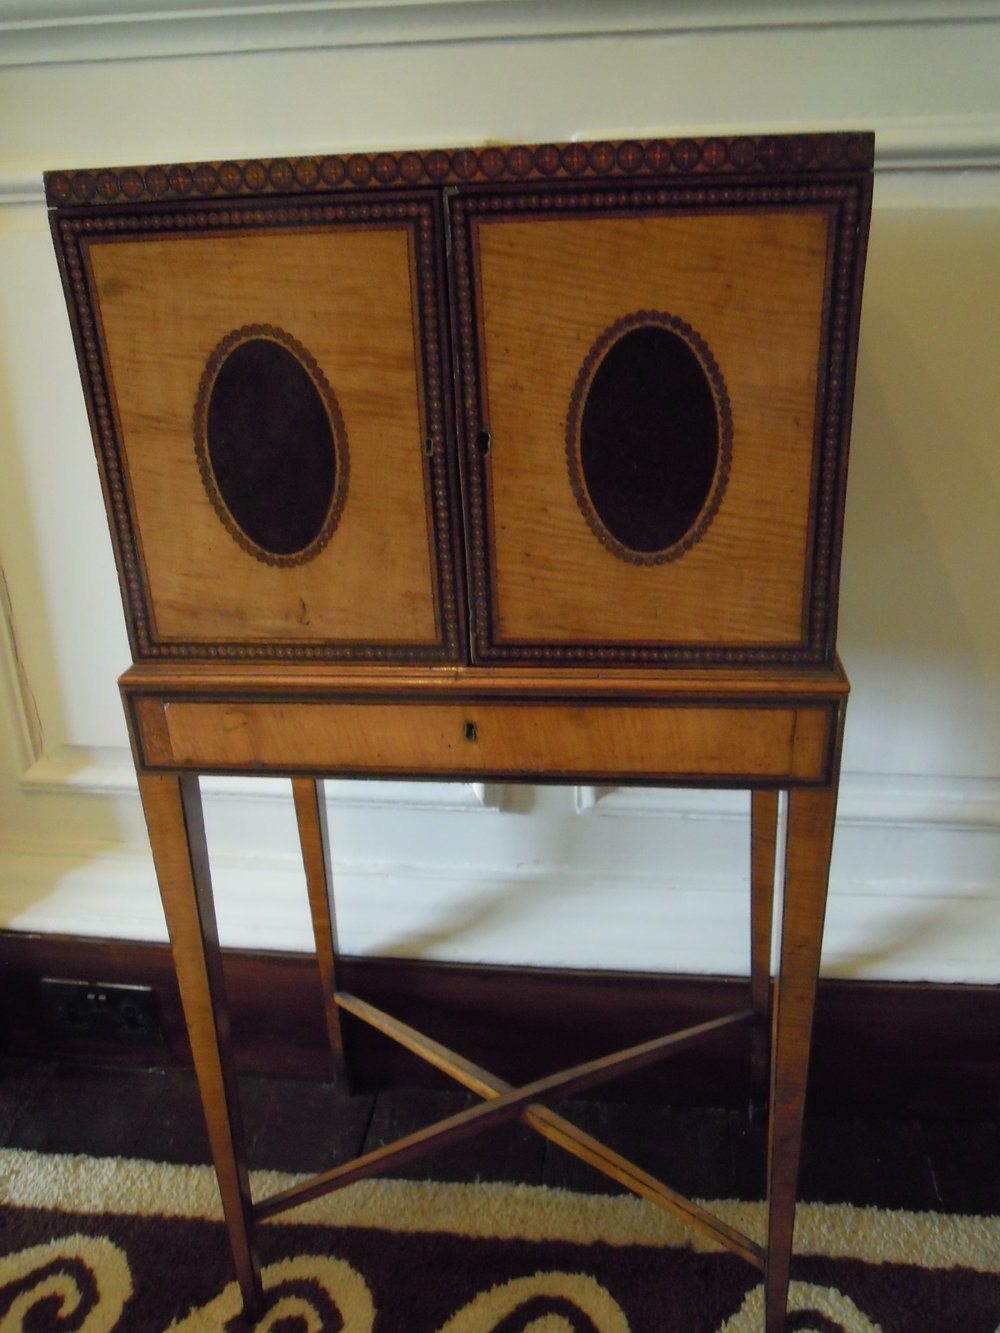 Possibly a Sewing Cabinet!